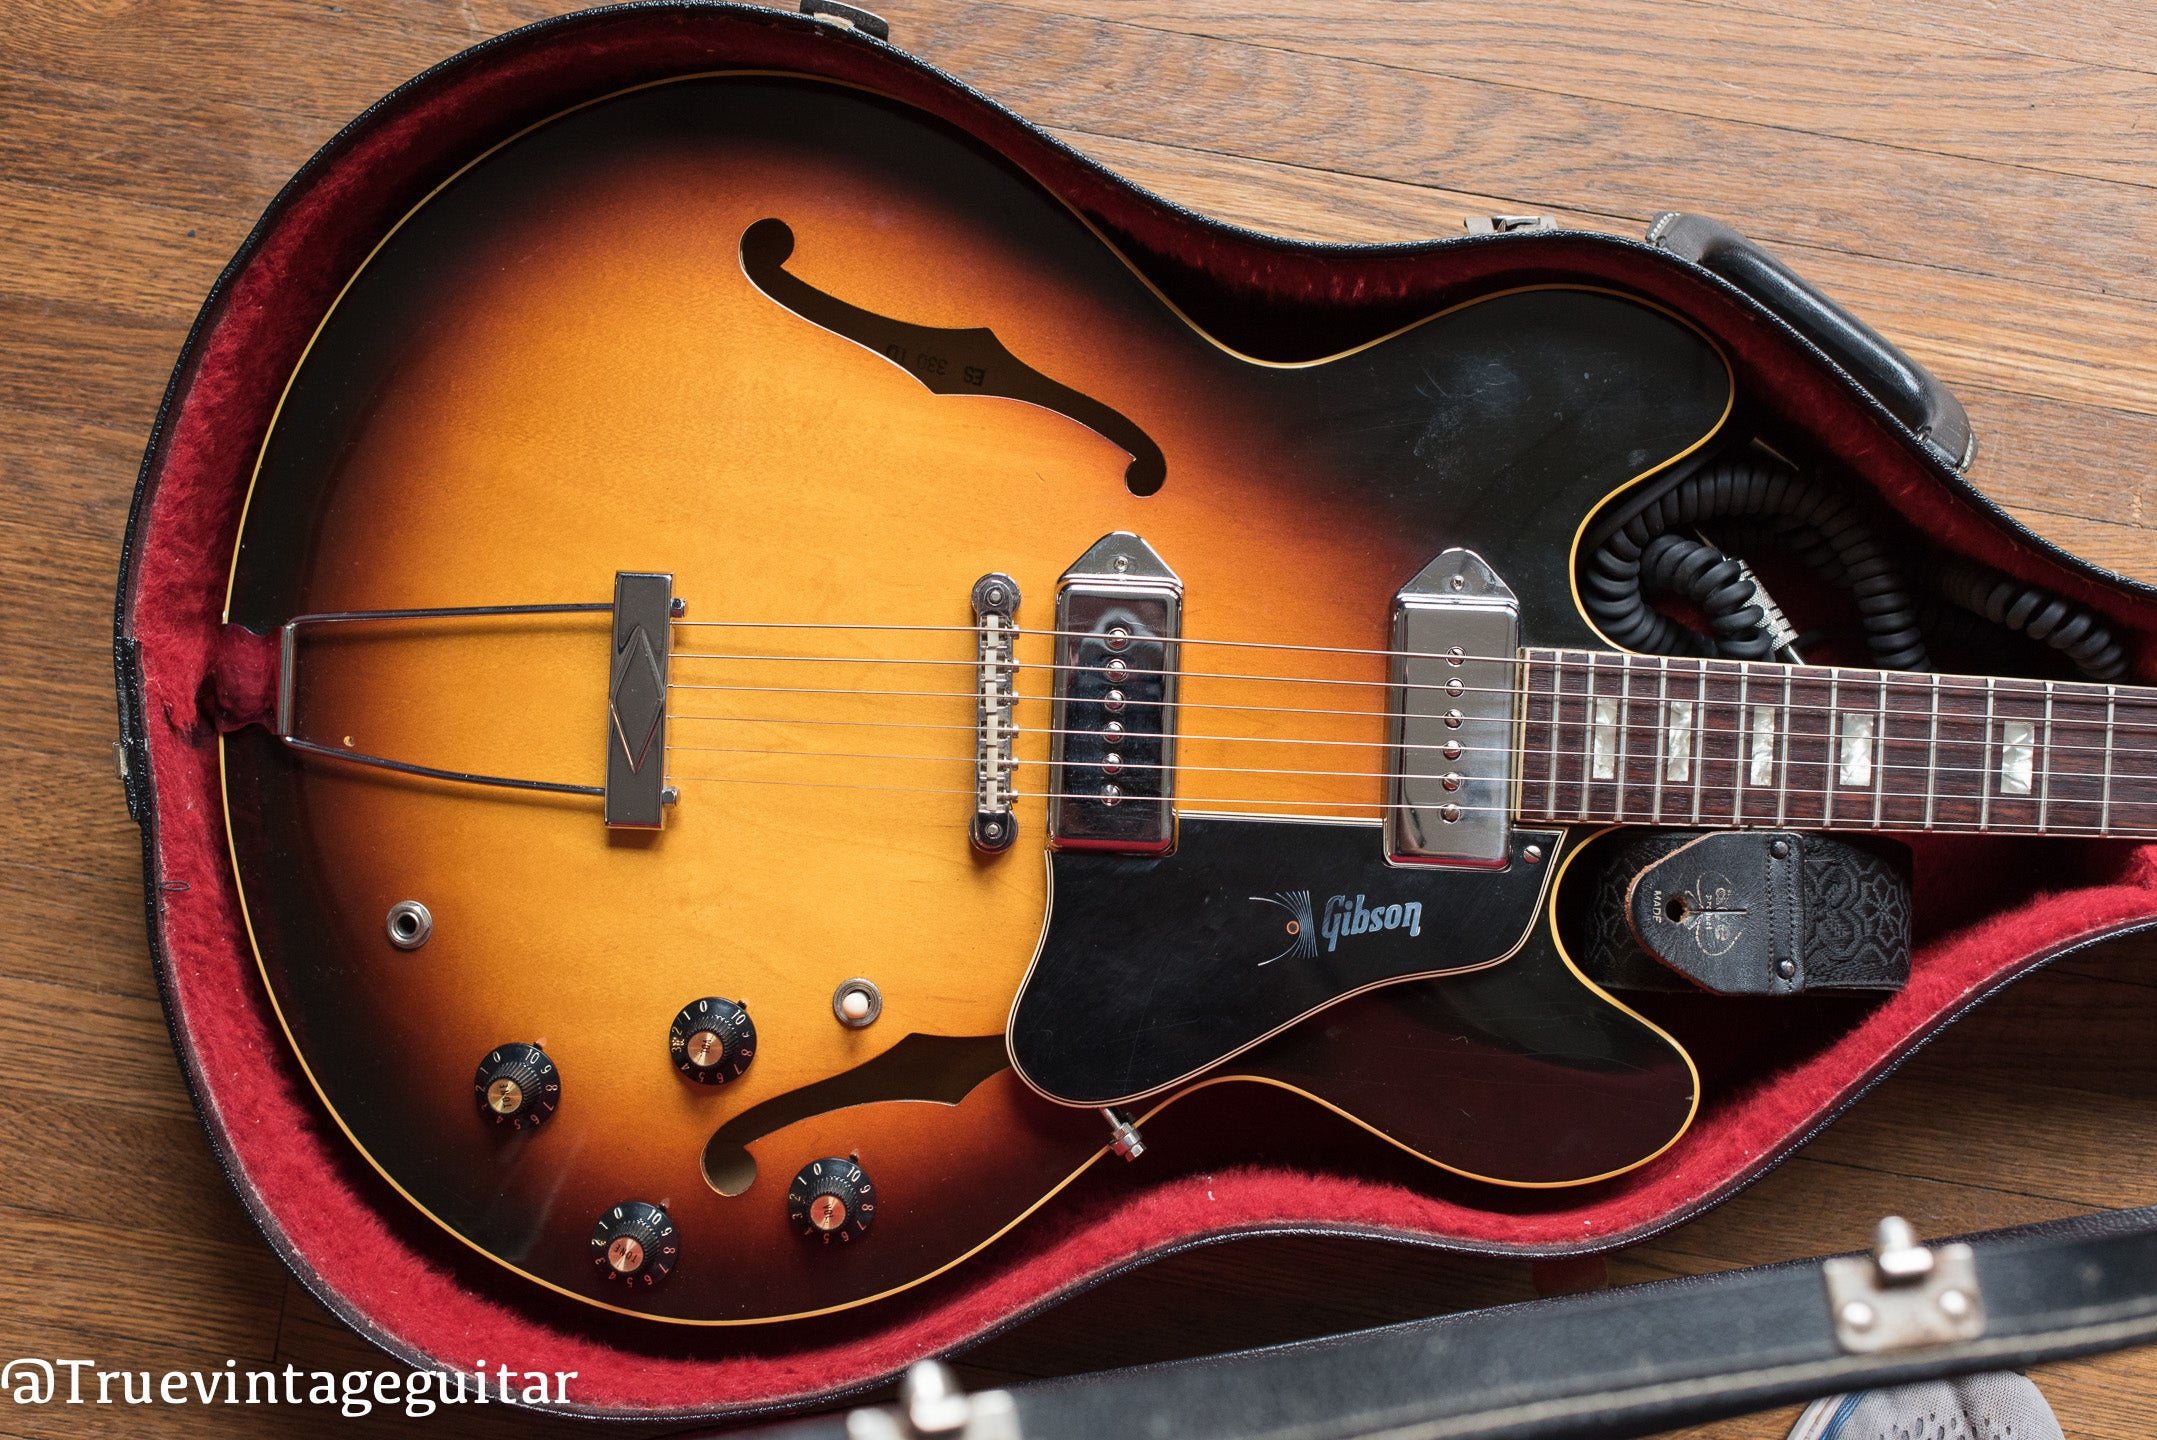 1968 Gibson ES-330TD Guitar in original case